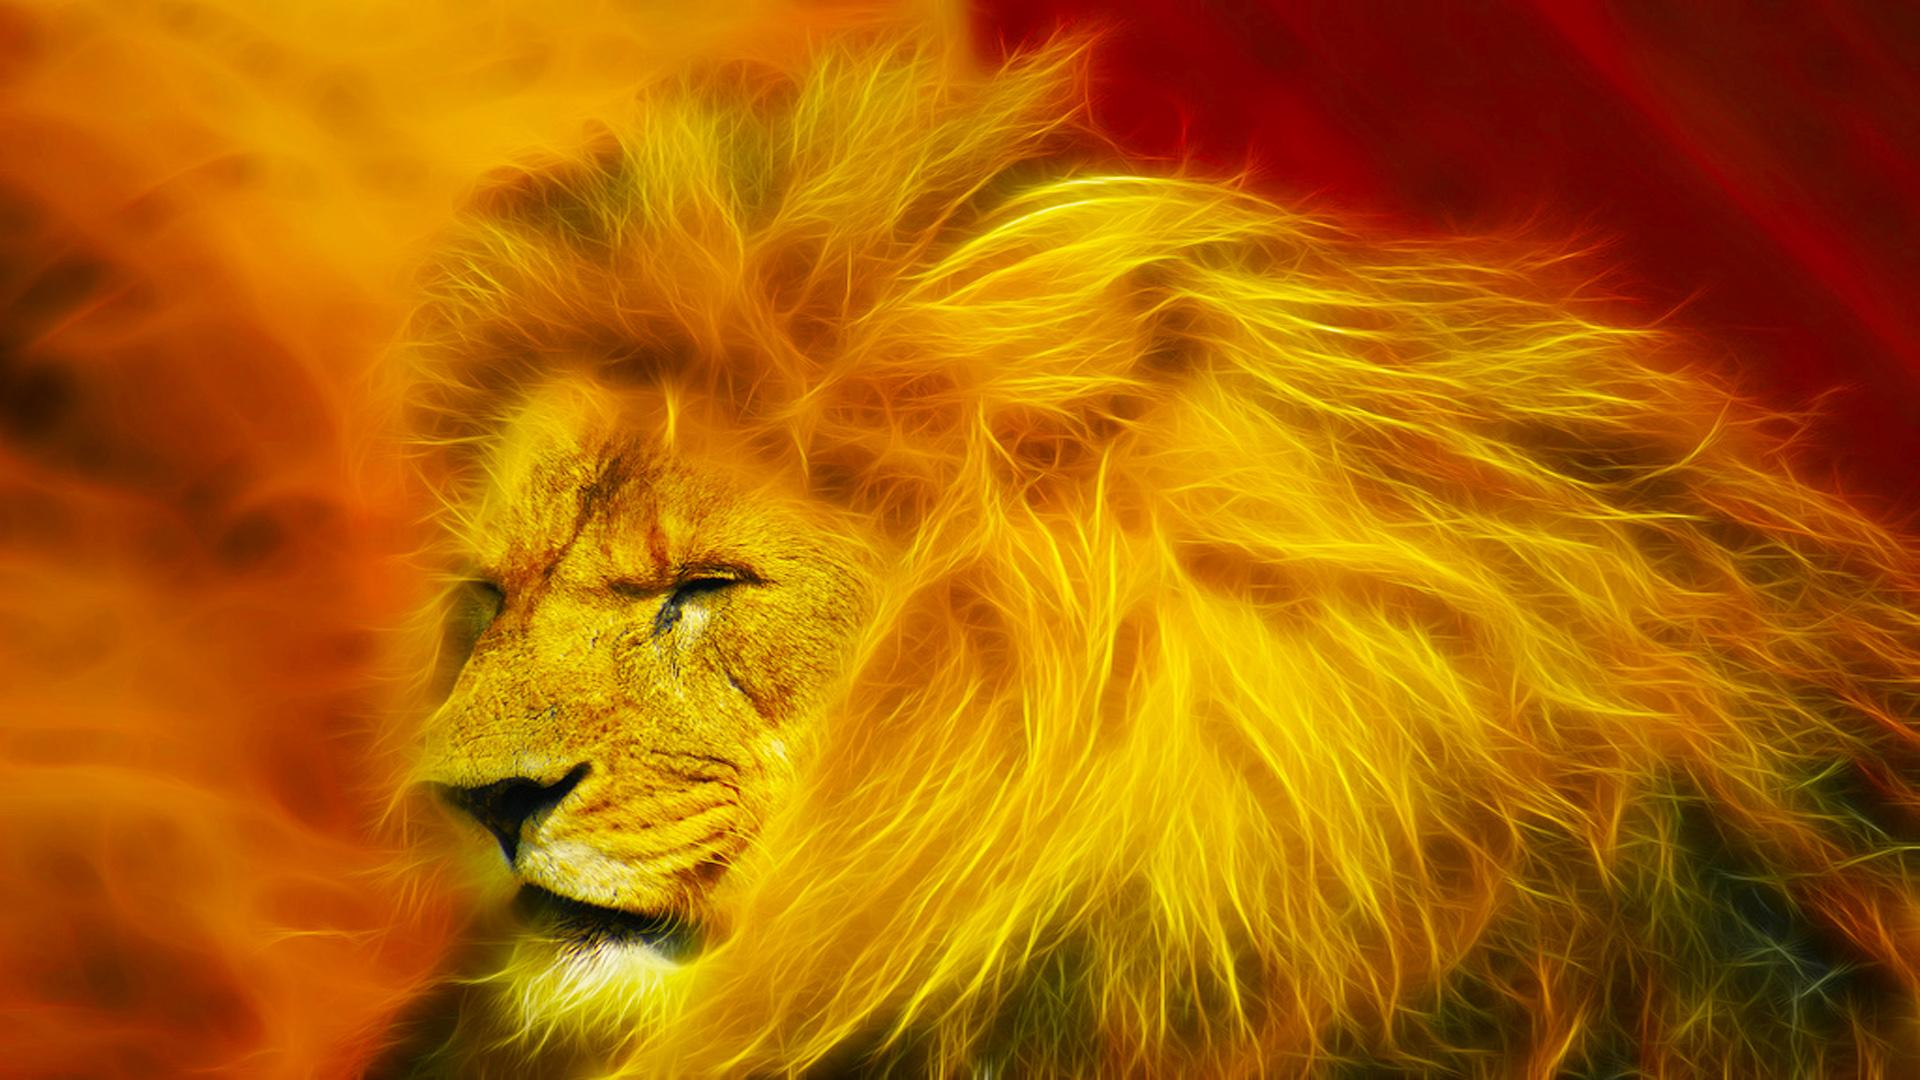 Download Lion King Wallpapers HD Free Download Gallery